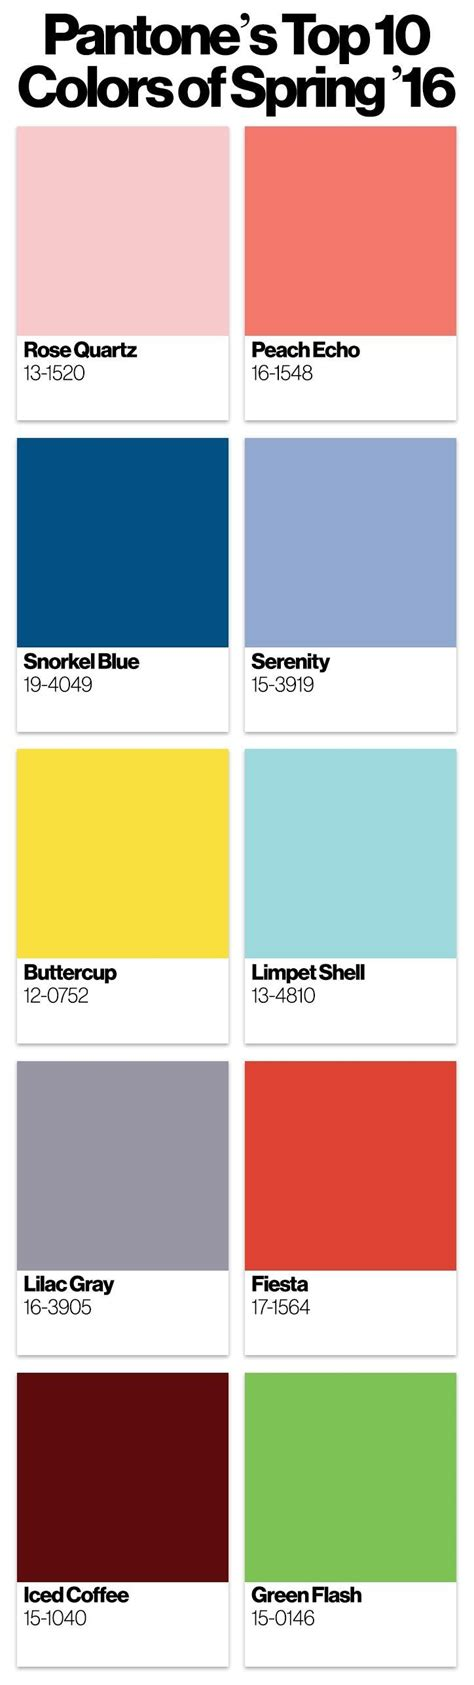 pantone color trends 2016 color trends spring pantone color of the year